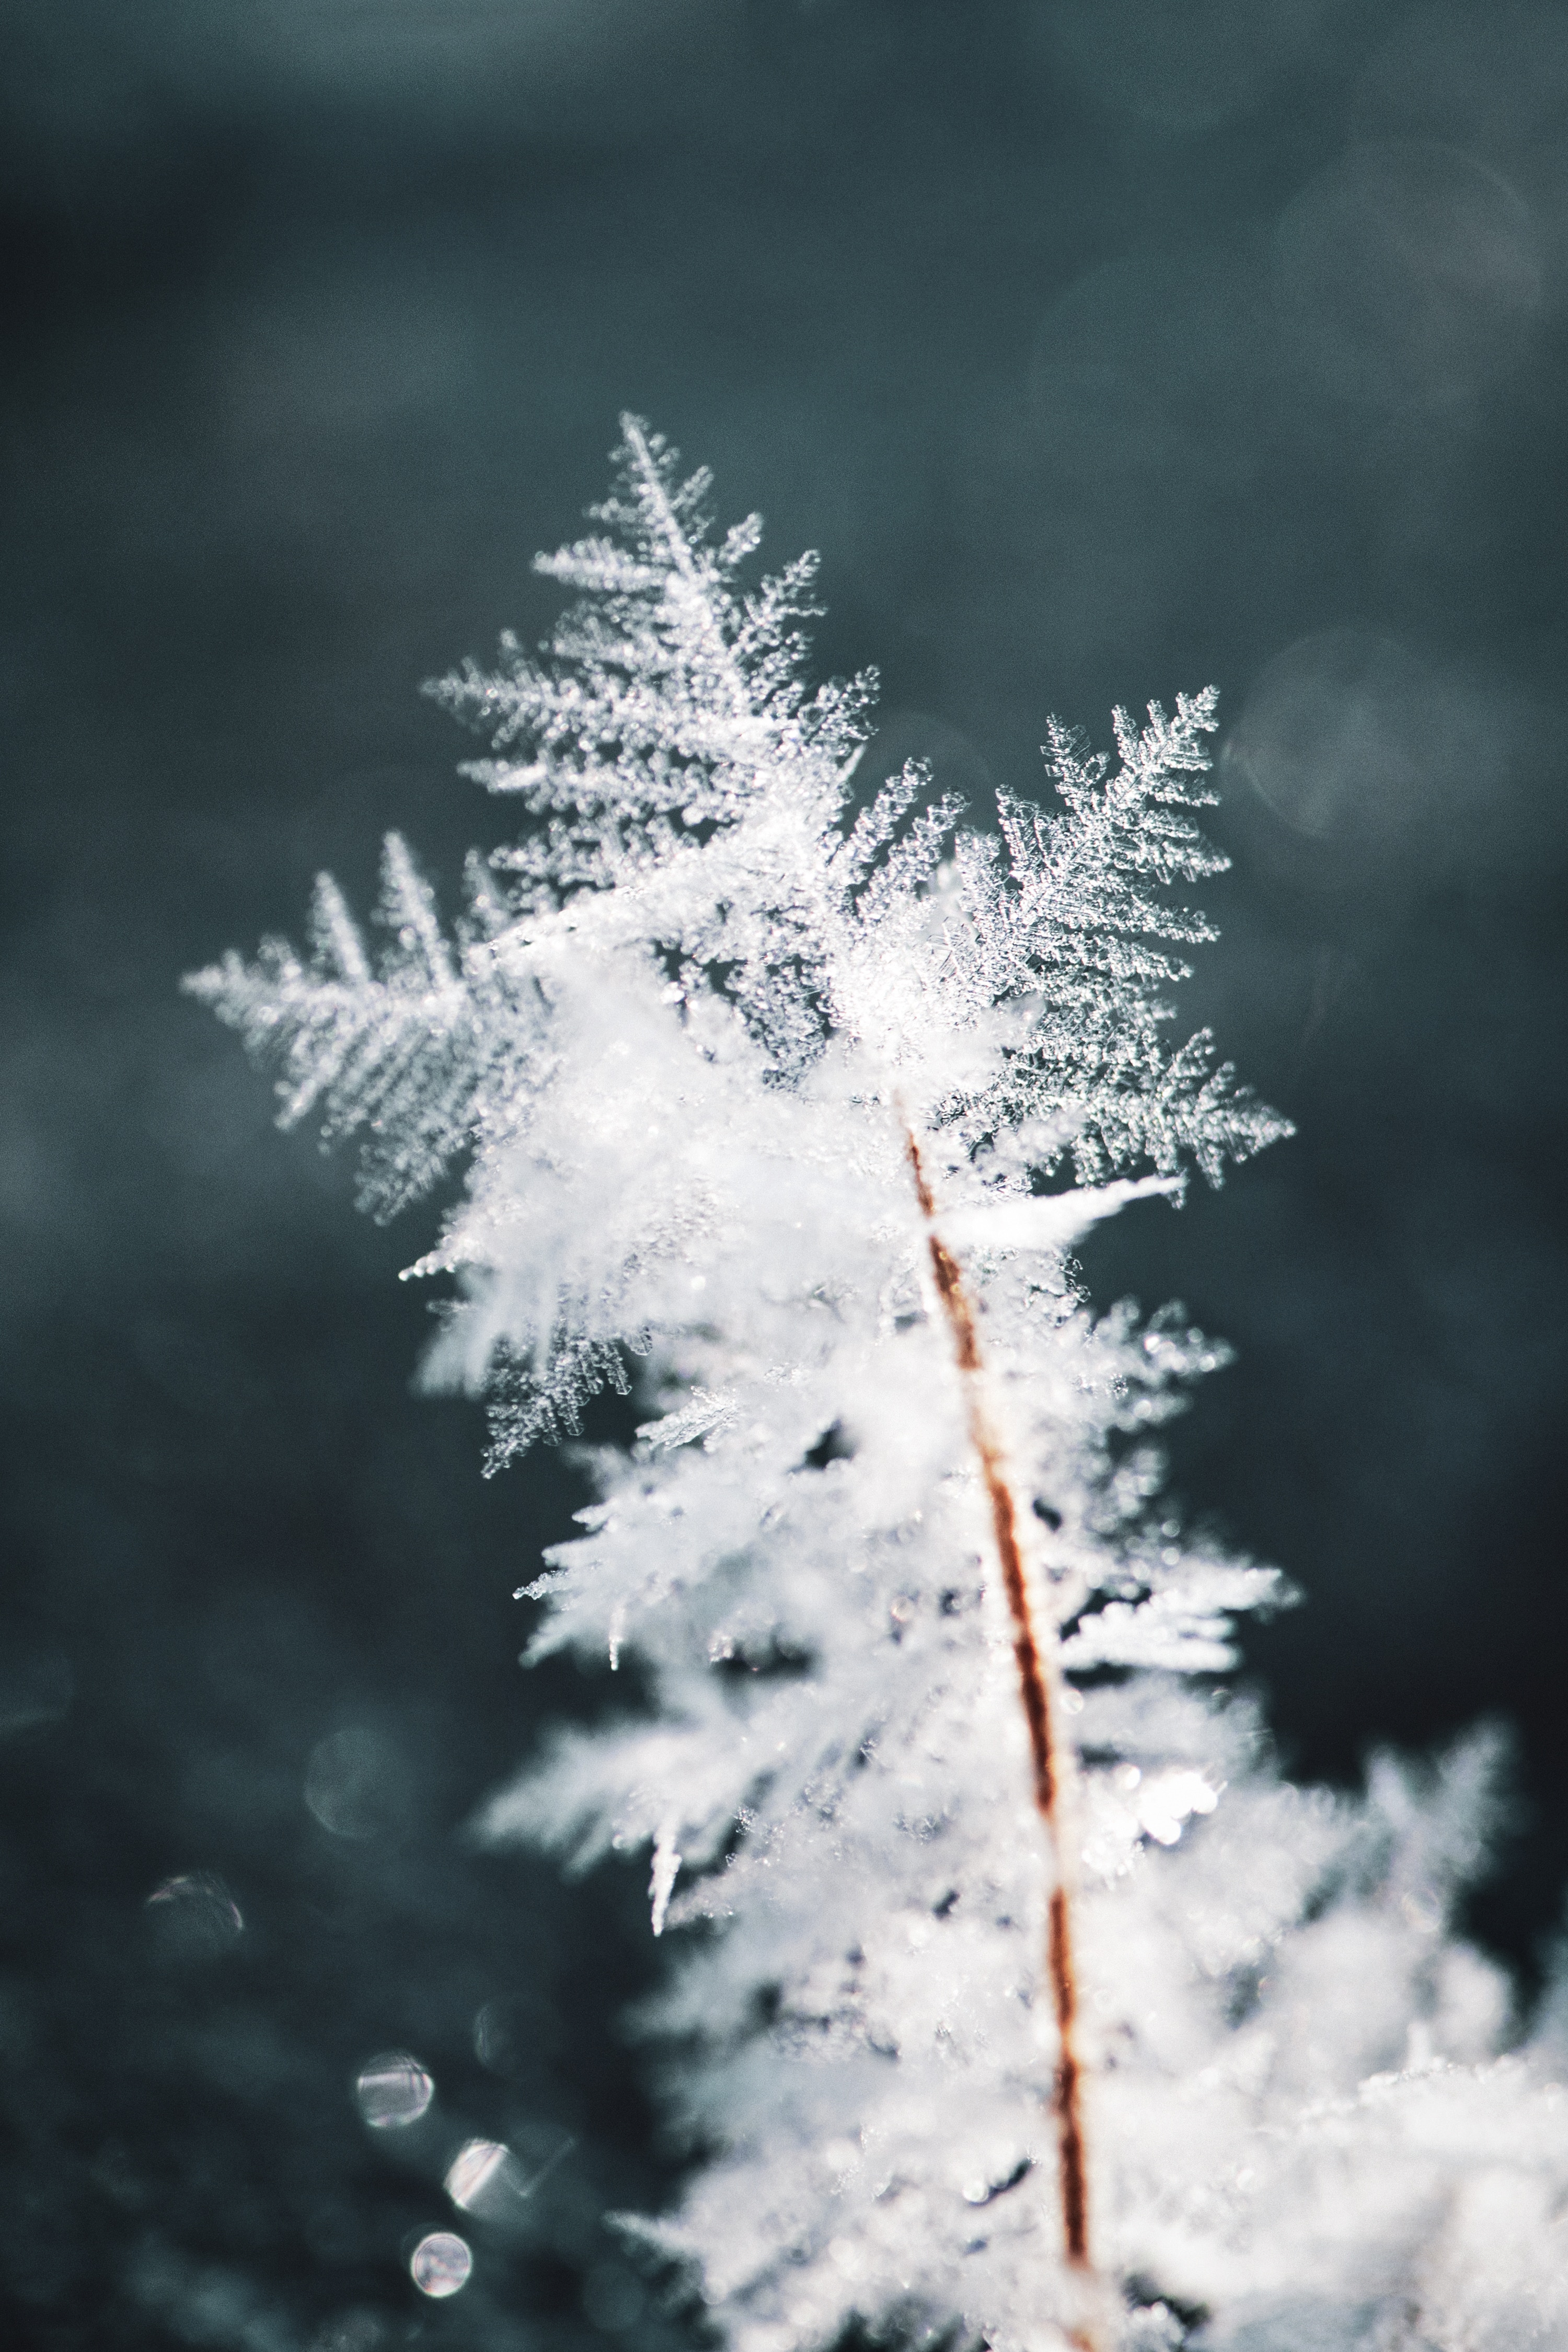 77248 download wallpaper Ice, Snow, Macro, Pattern, Snowflake screensavers and pictures for free